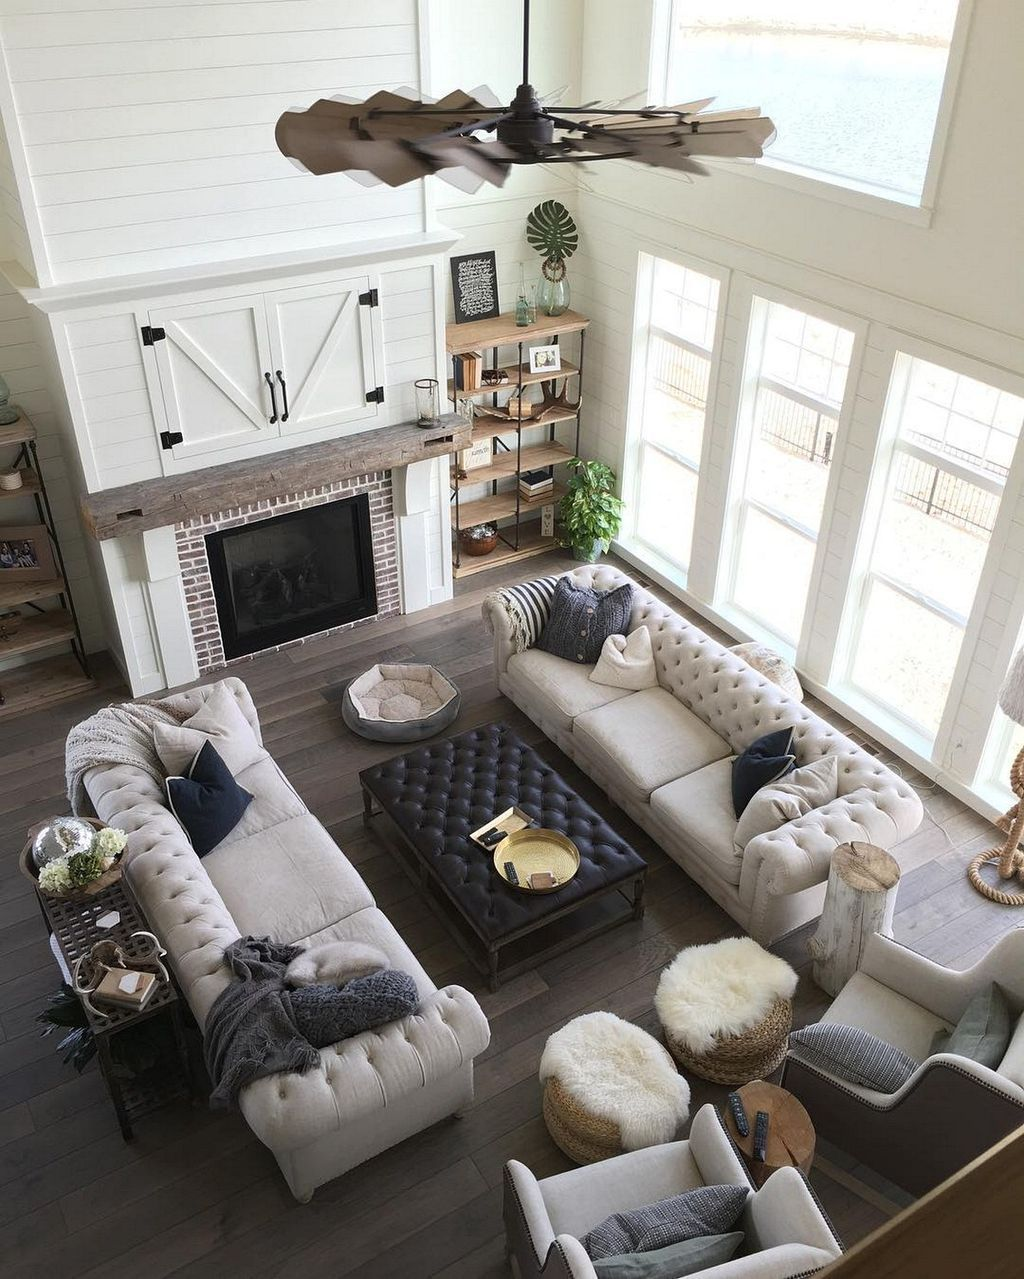 Incredible family room decorating ideas 2018 Incredible French Country Living Room Decorating Ideas 17 Pinterest Incredible French Country Living Room Decorating Ideas 17 Home